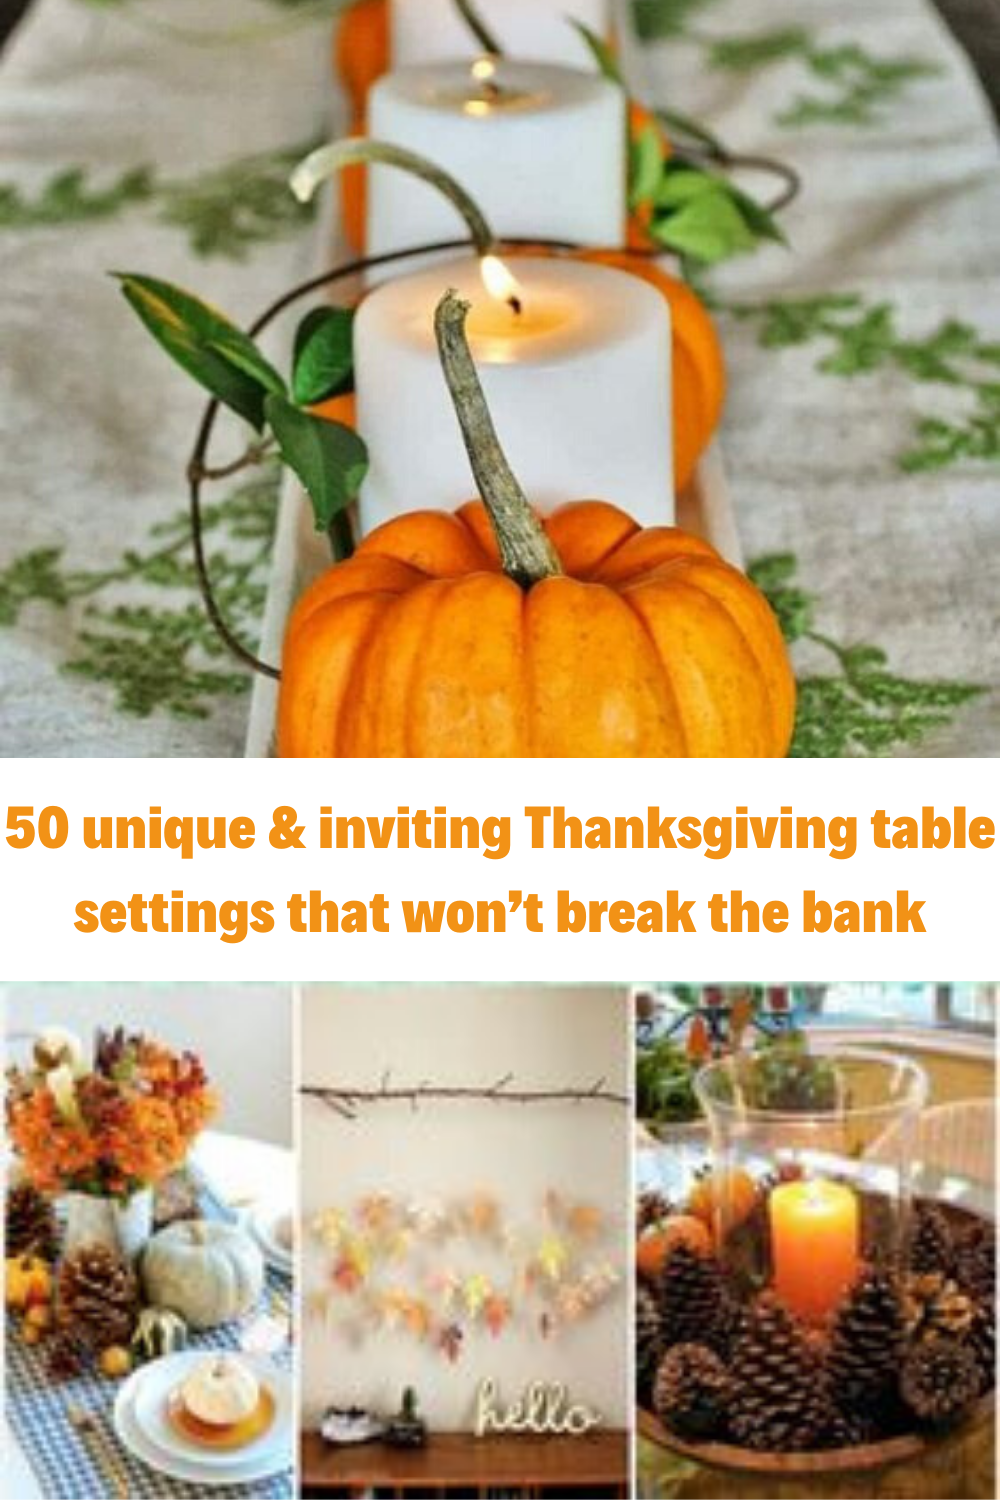 50 Unique Inviting Thanksgiving Table Settings That Won T Break The Bank In 2020 Thanksgiving Table Settings Unique Thanksgiving Table Thanksgiving Table